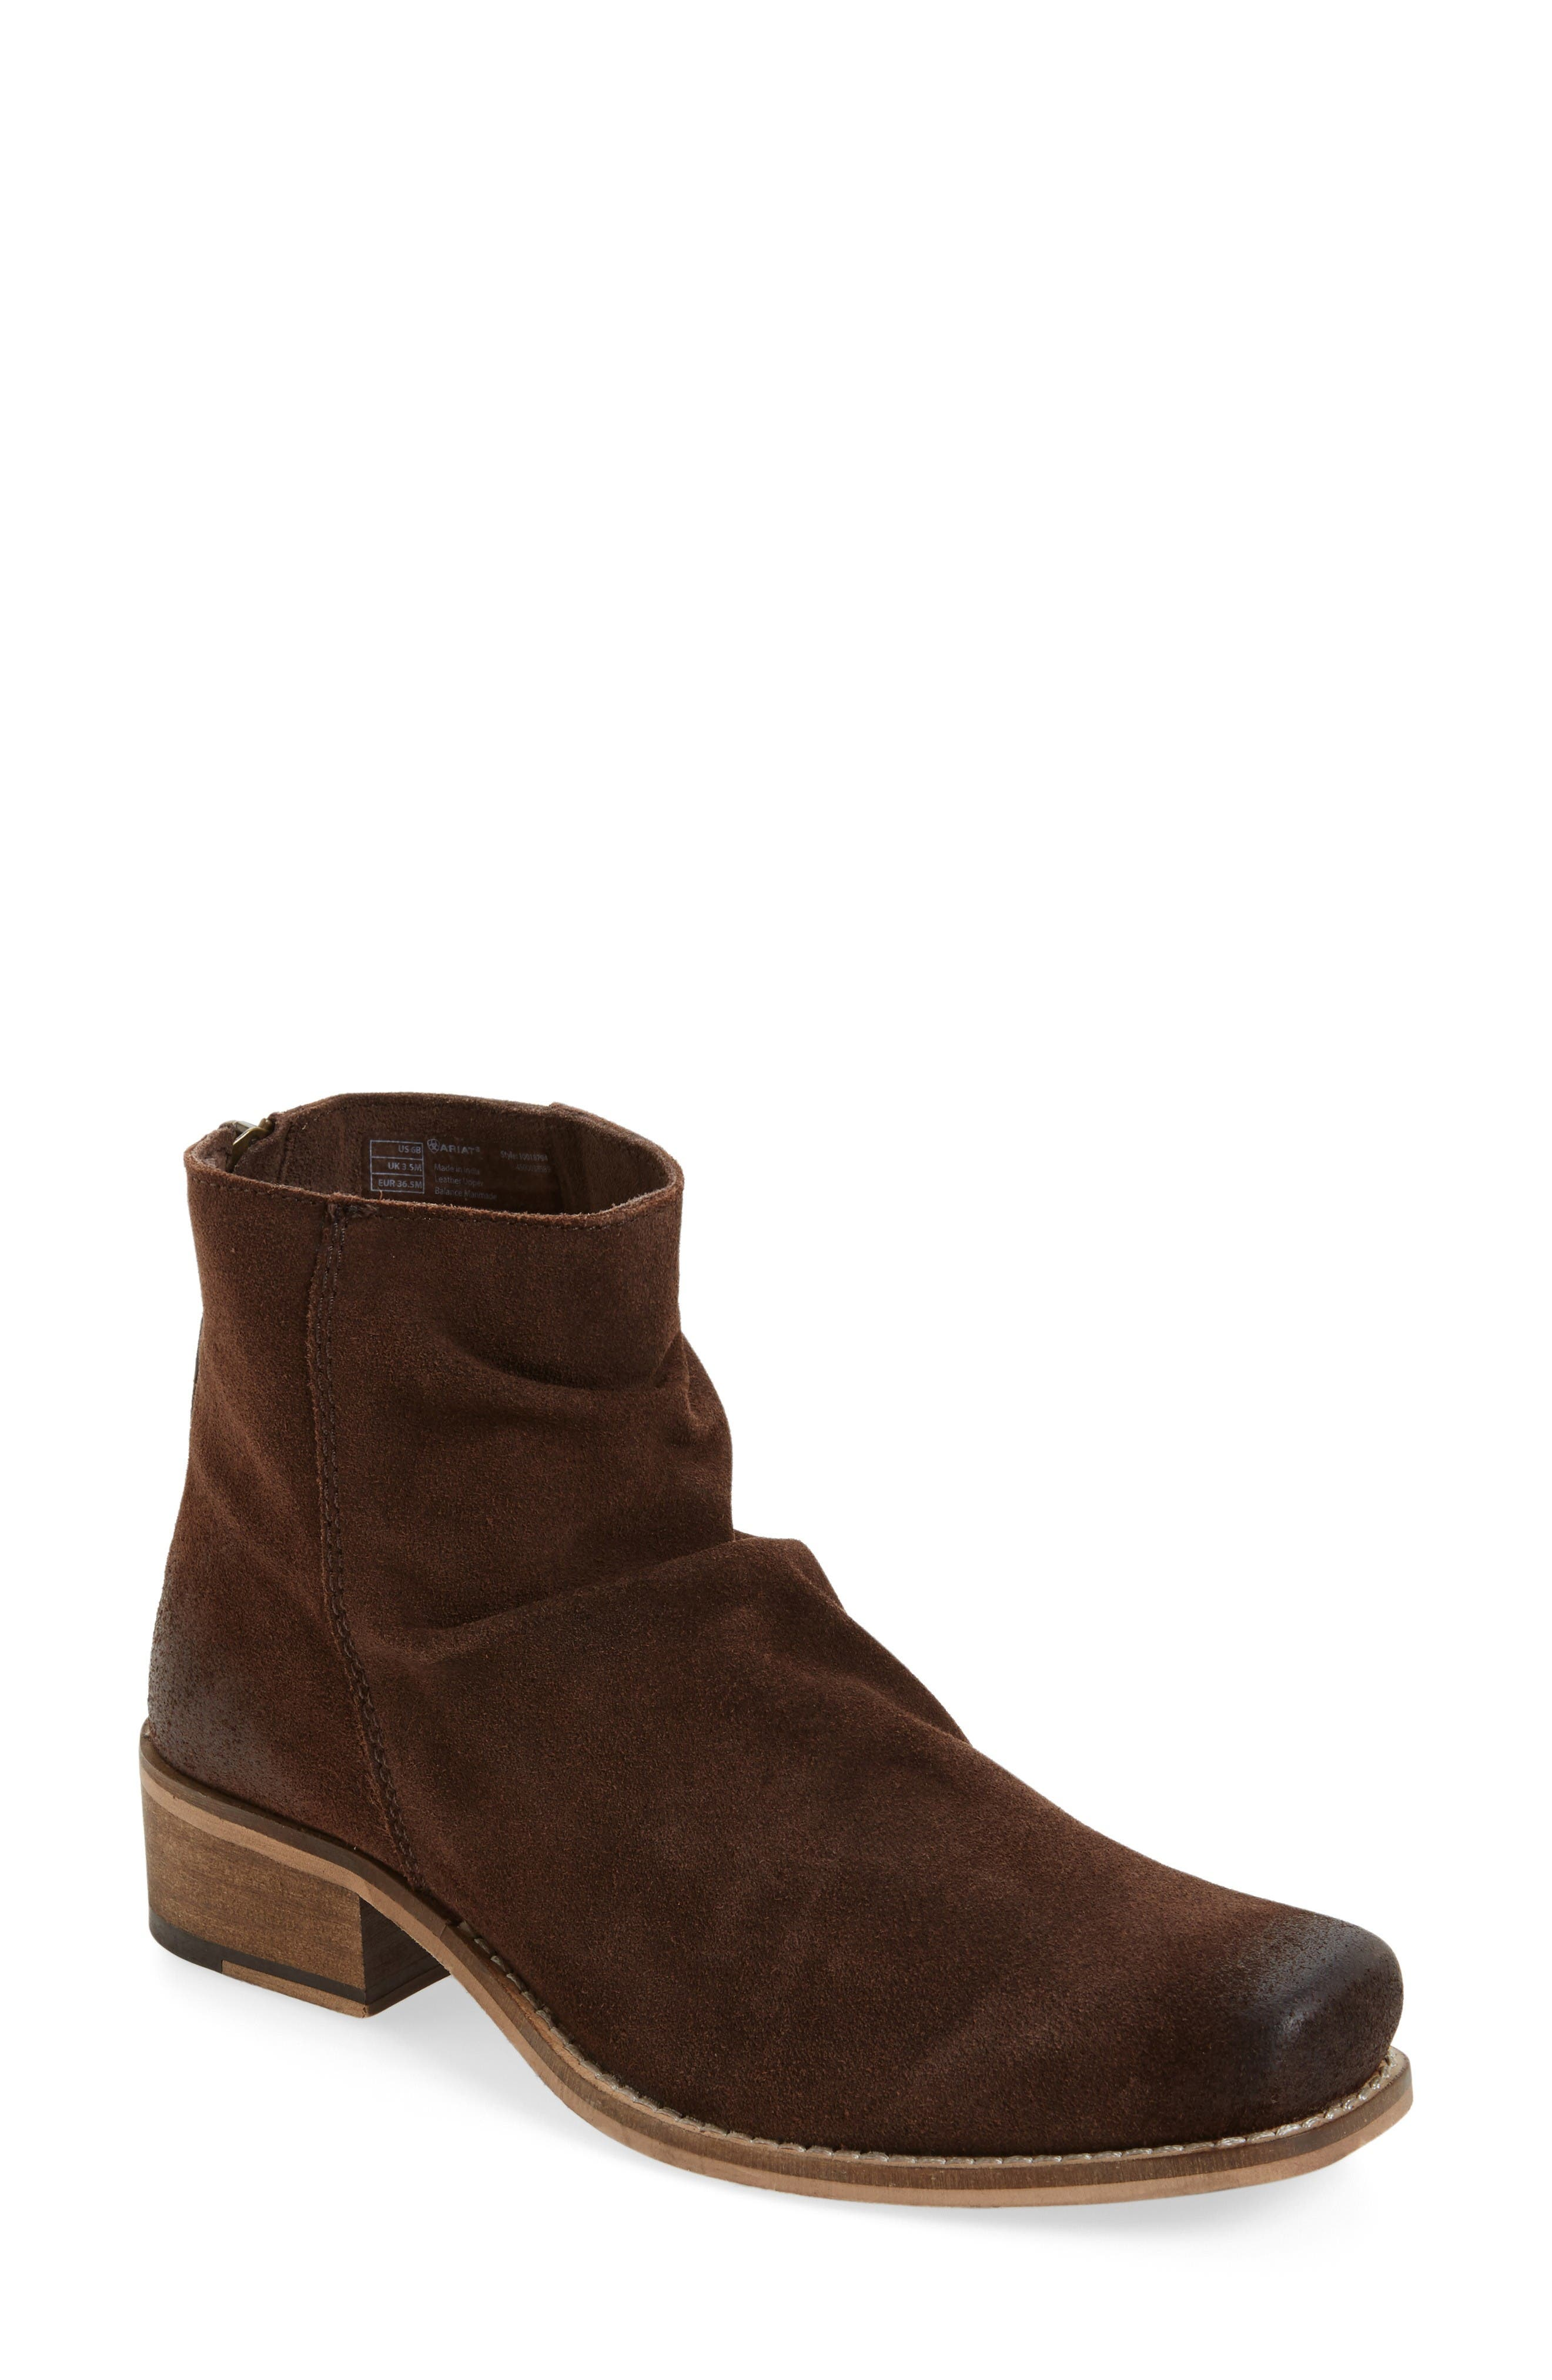 Unbridled Sloan Slouchy Bootie,                         Main,                         color, Dark Brown Leather